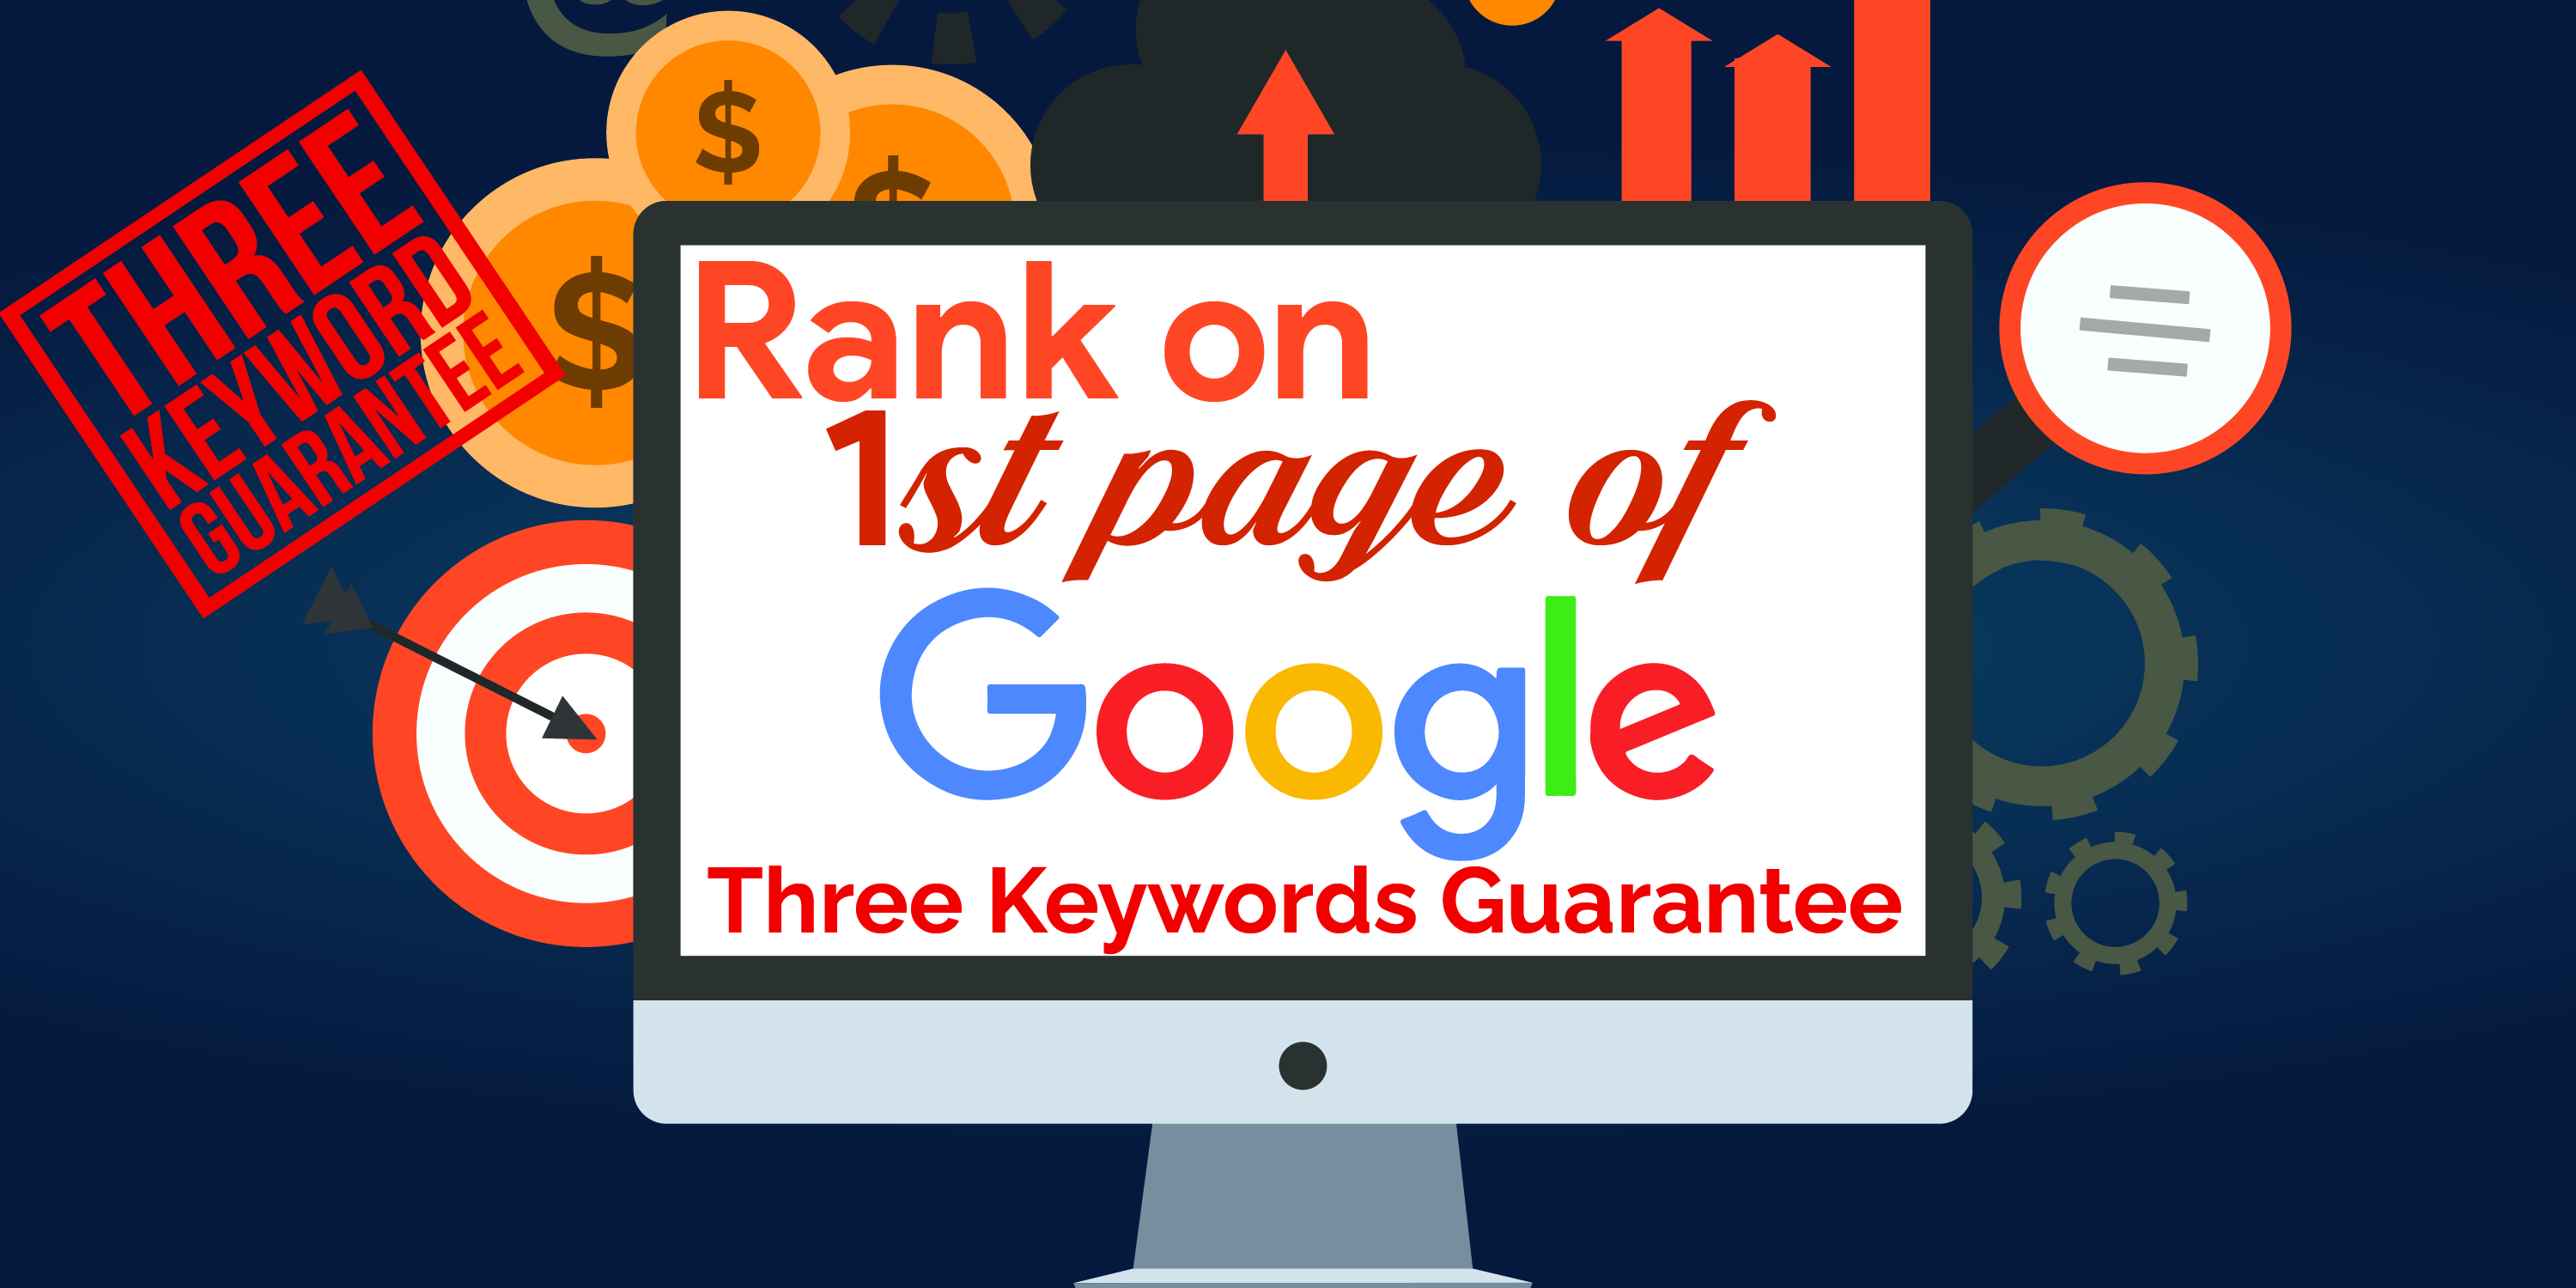 Guaranteed 3 Keywords Google 1 Page-Update May 2021